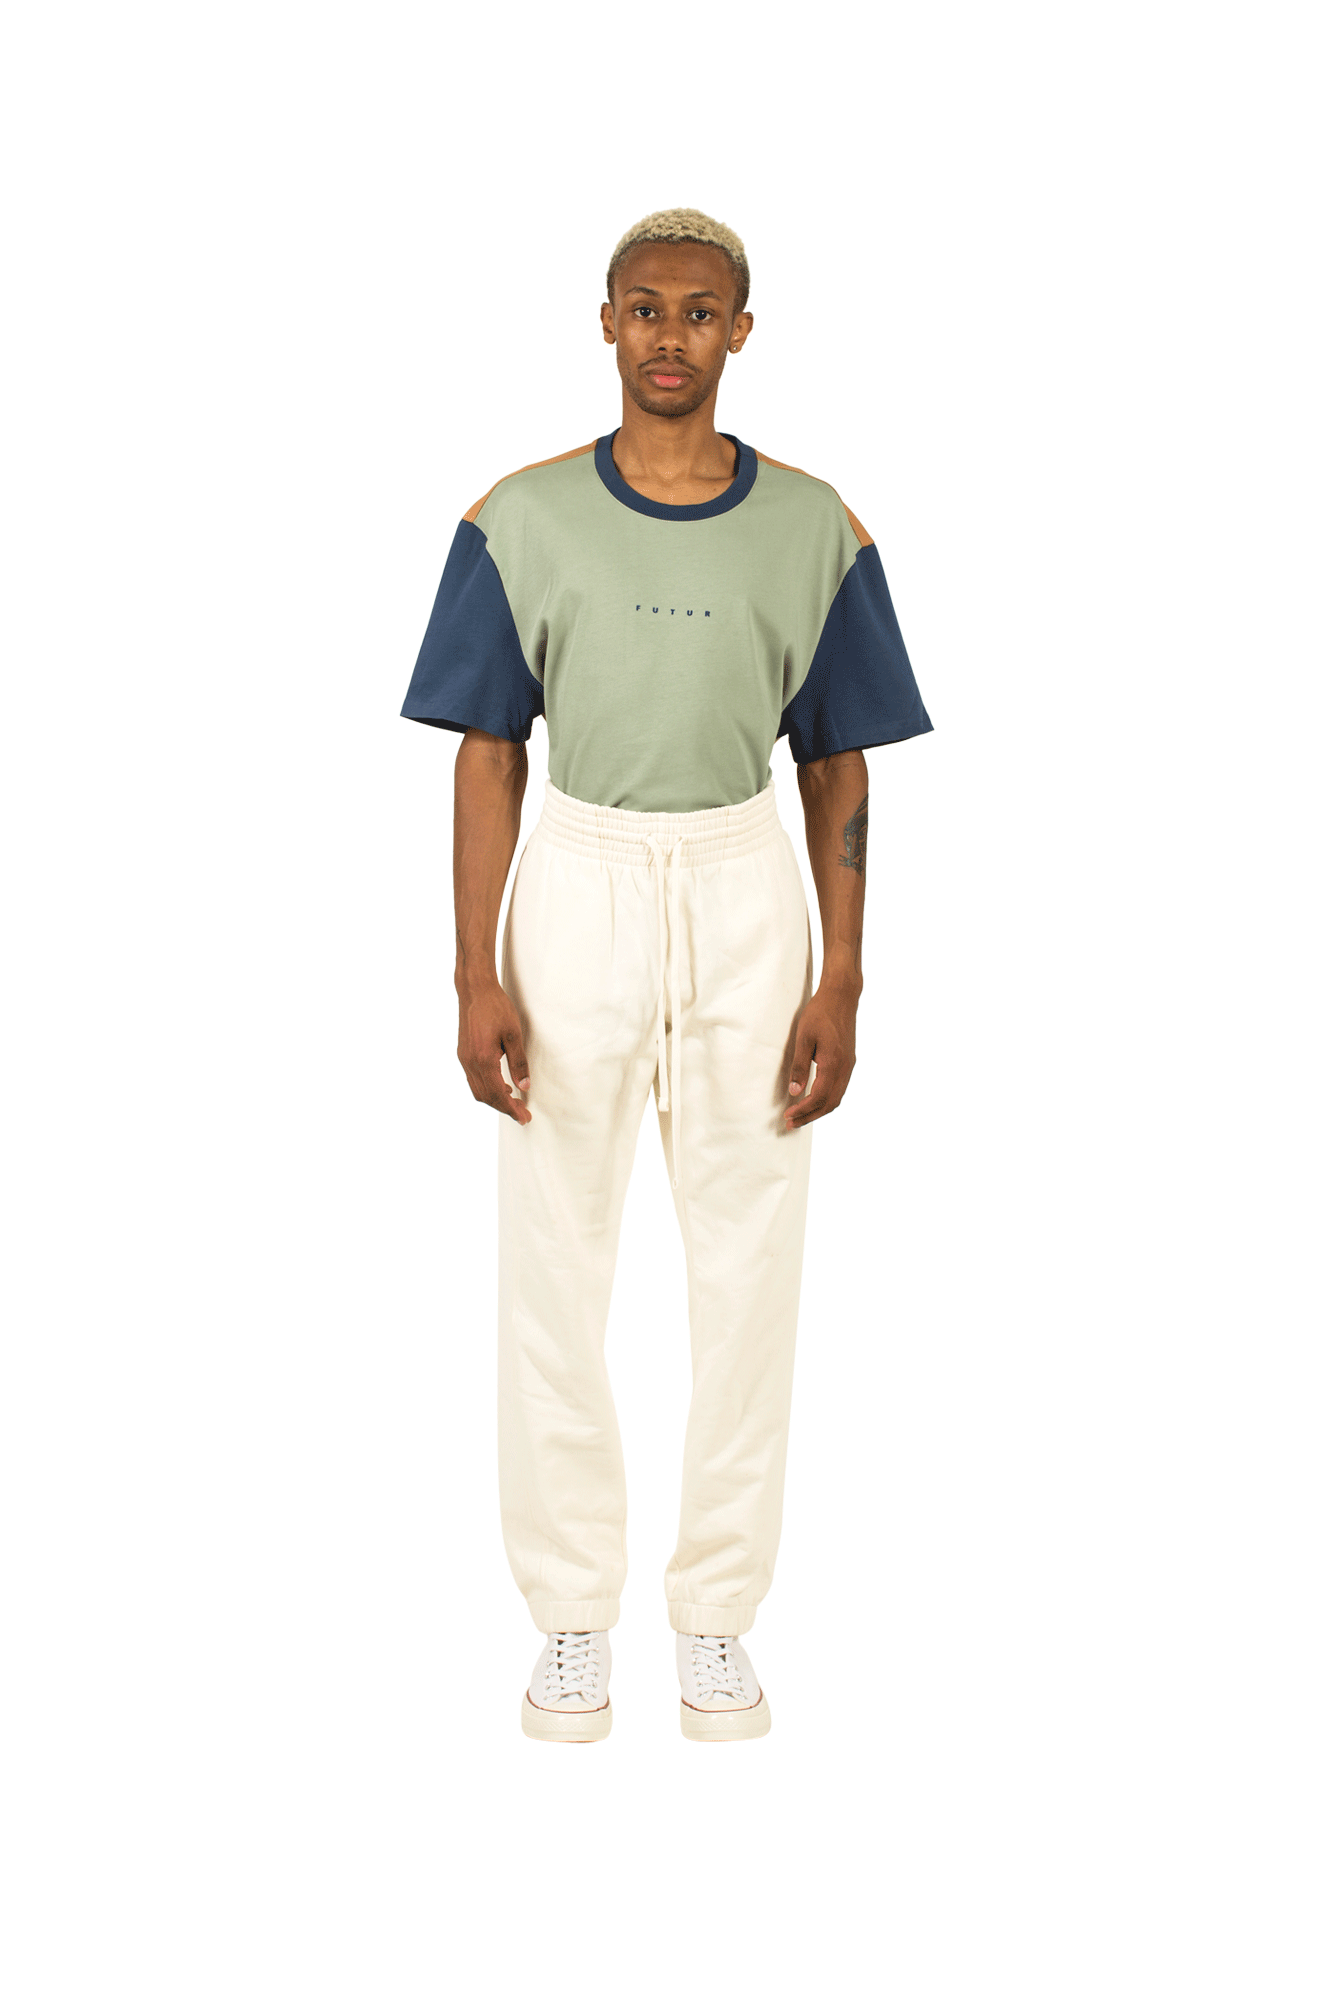 Sweatpants Futur Inc Sparring Sweatpant White - One Block Down